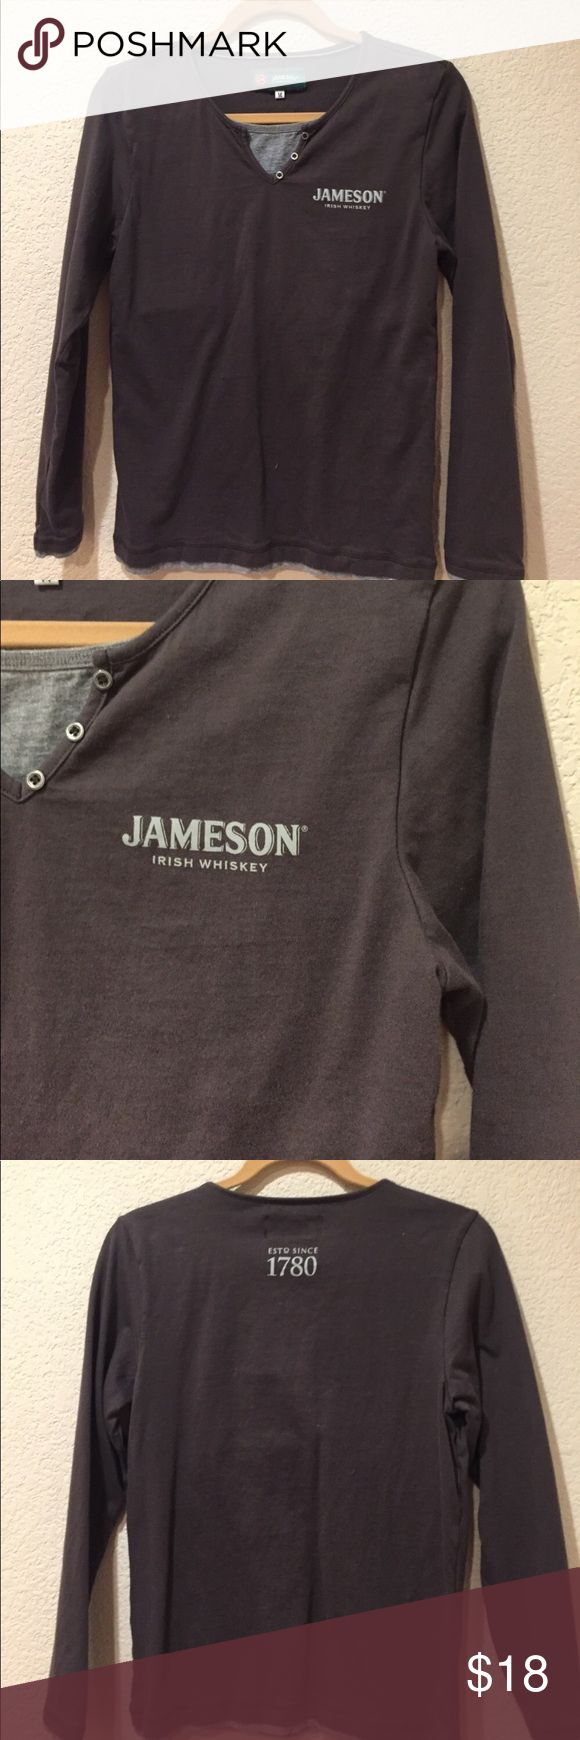 Jameson Irish whiskey 1780 women's long sleeve top Jameson Irish whiskey 1780 women's long sleeve top great preloved co diction with faux undershirt and three buttons has stretch to it and is thicker for fall/winter Tops